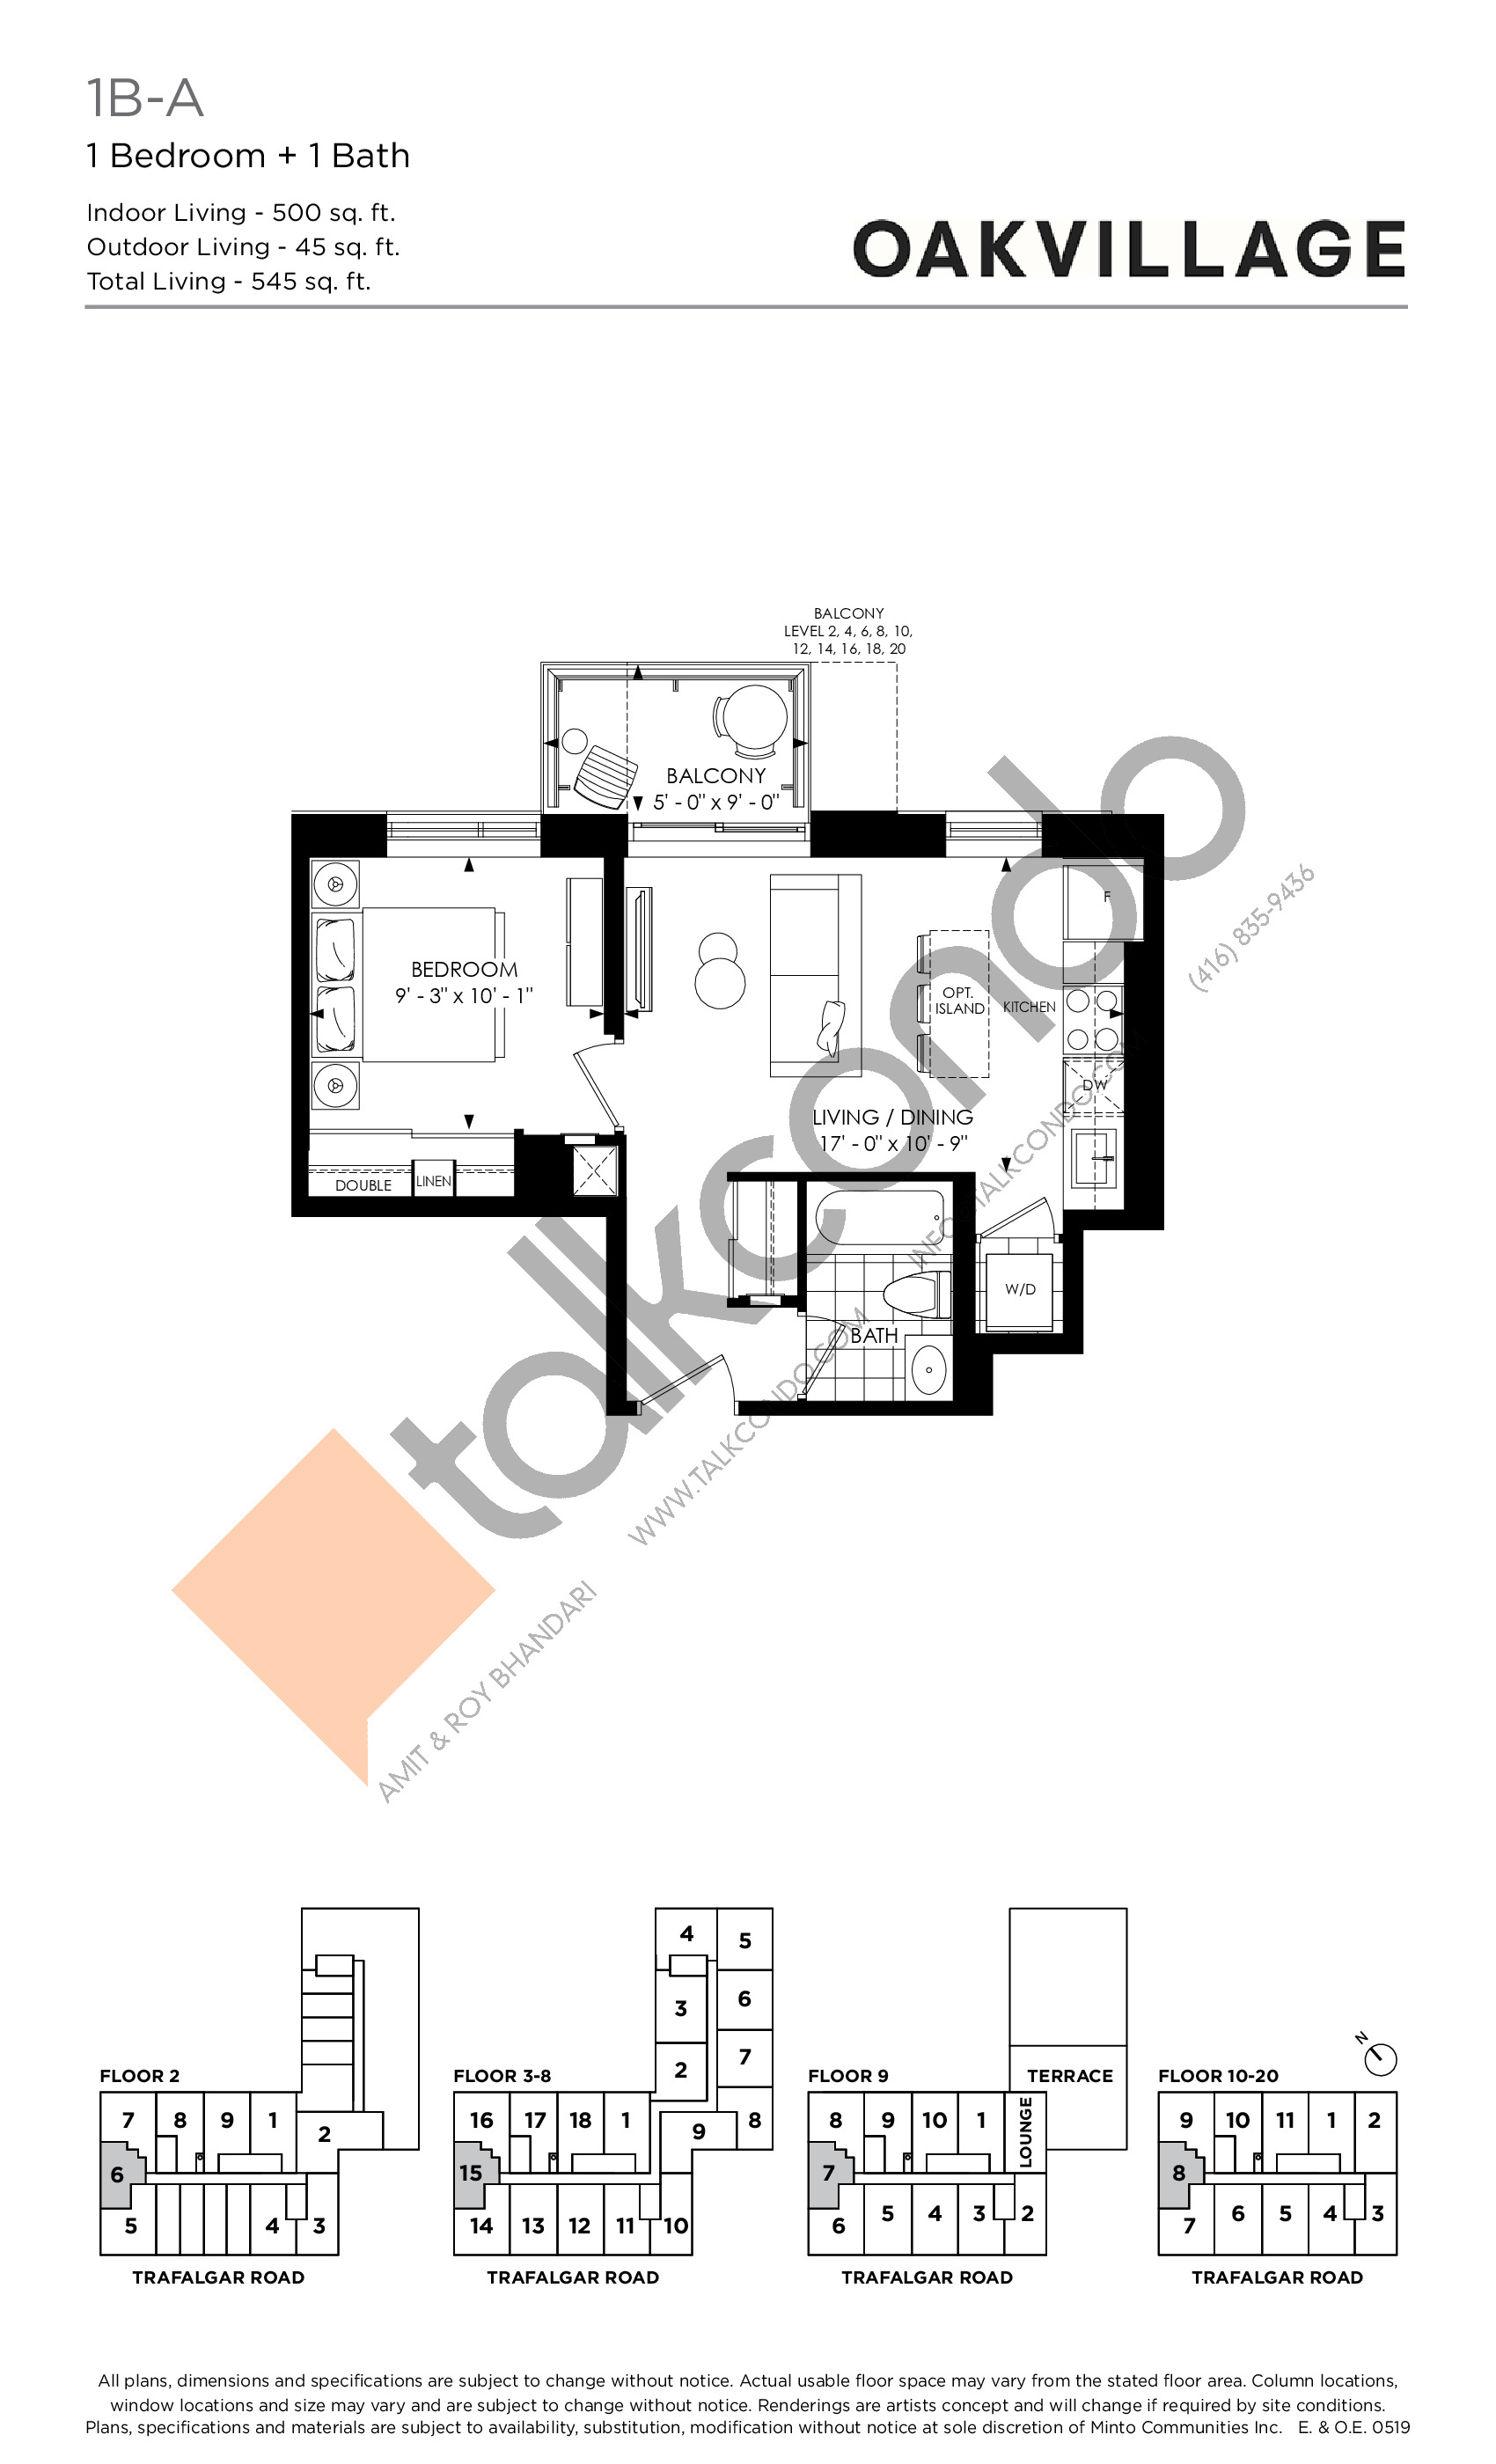 1B-A (Tower) Floor Plan at Oakvillage Phase 2 - 500 sq.ft